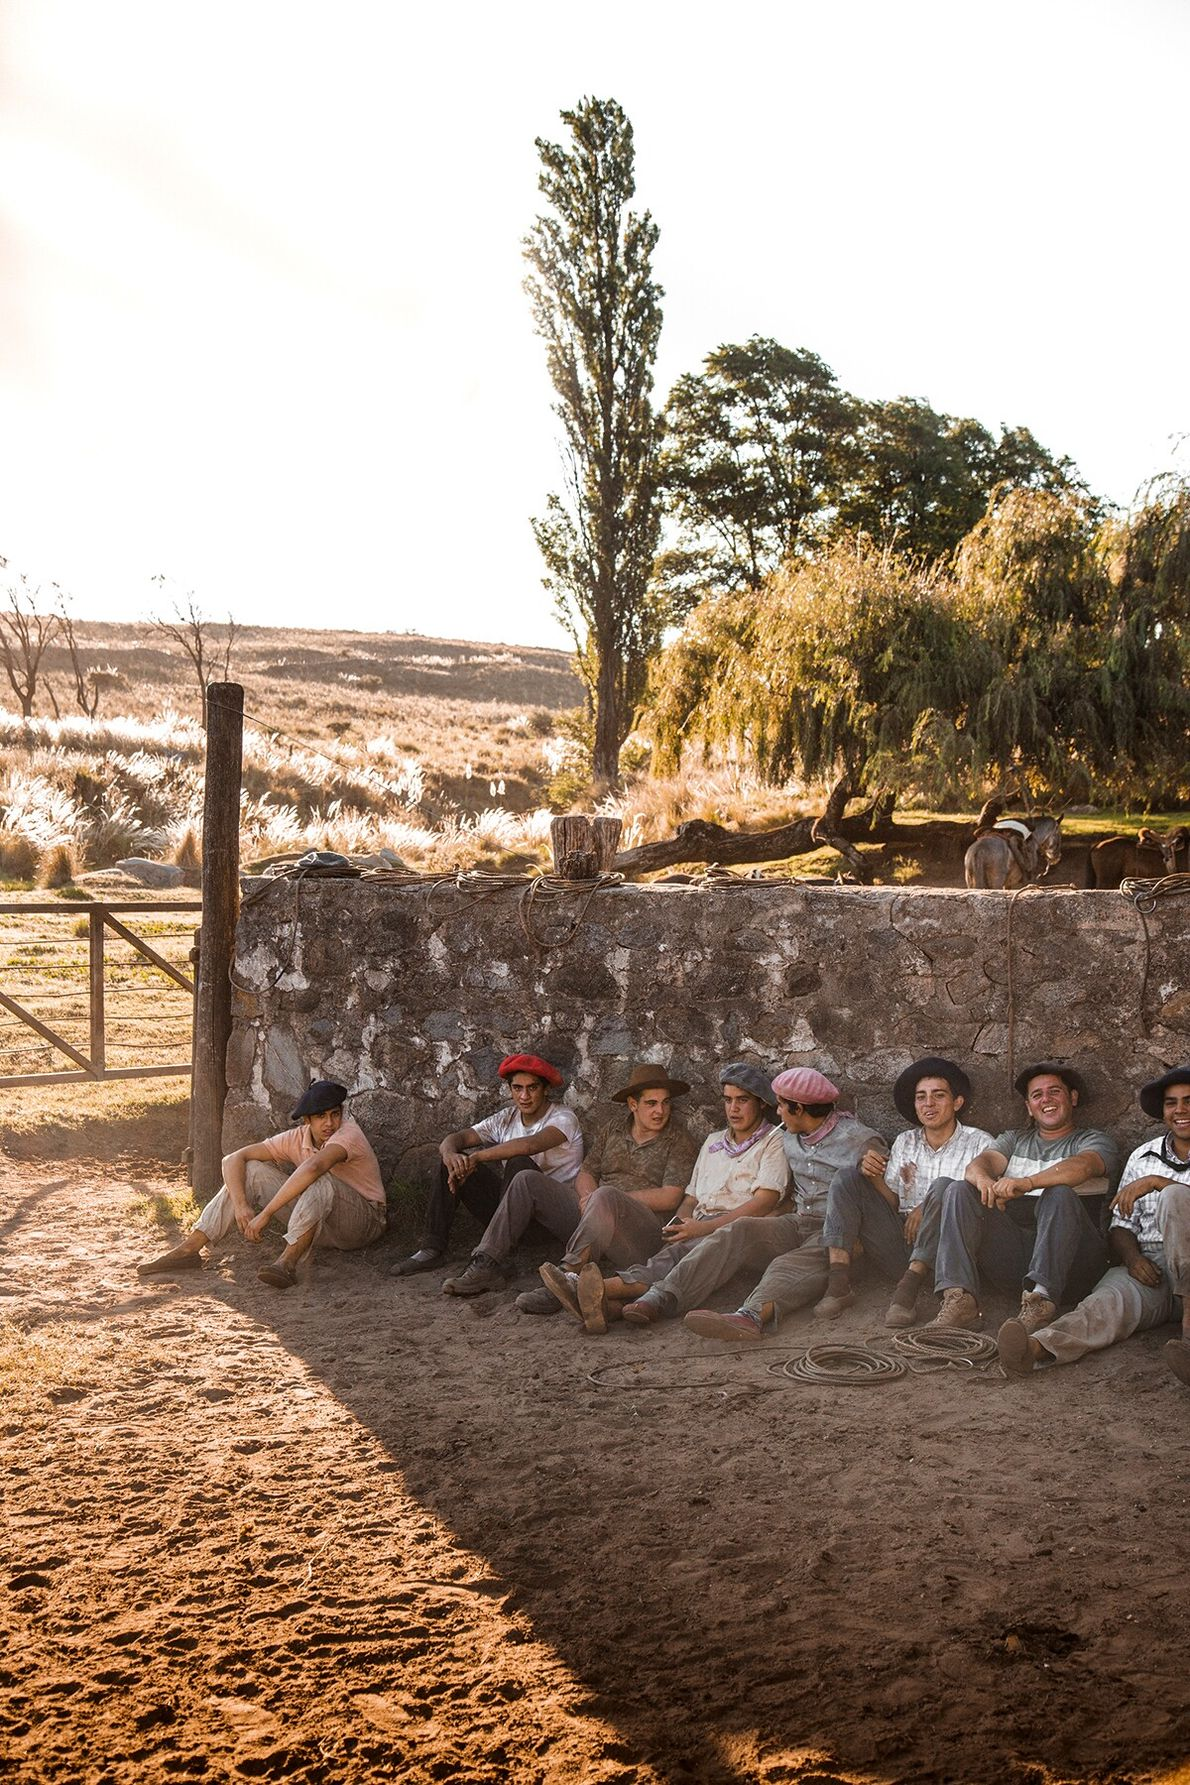 The yerra (branding festival) is held every summer. Cattle are driven in from the fields by ...